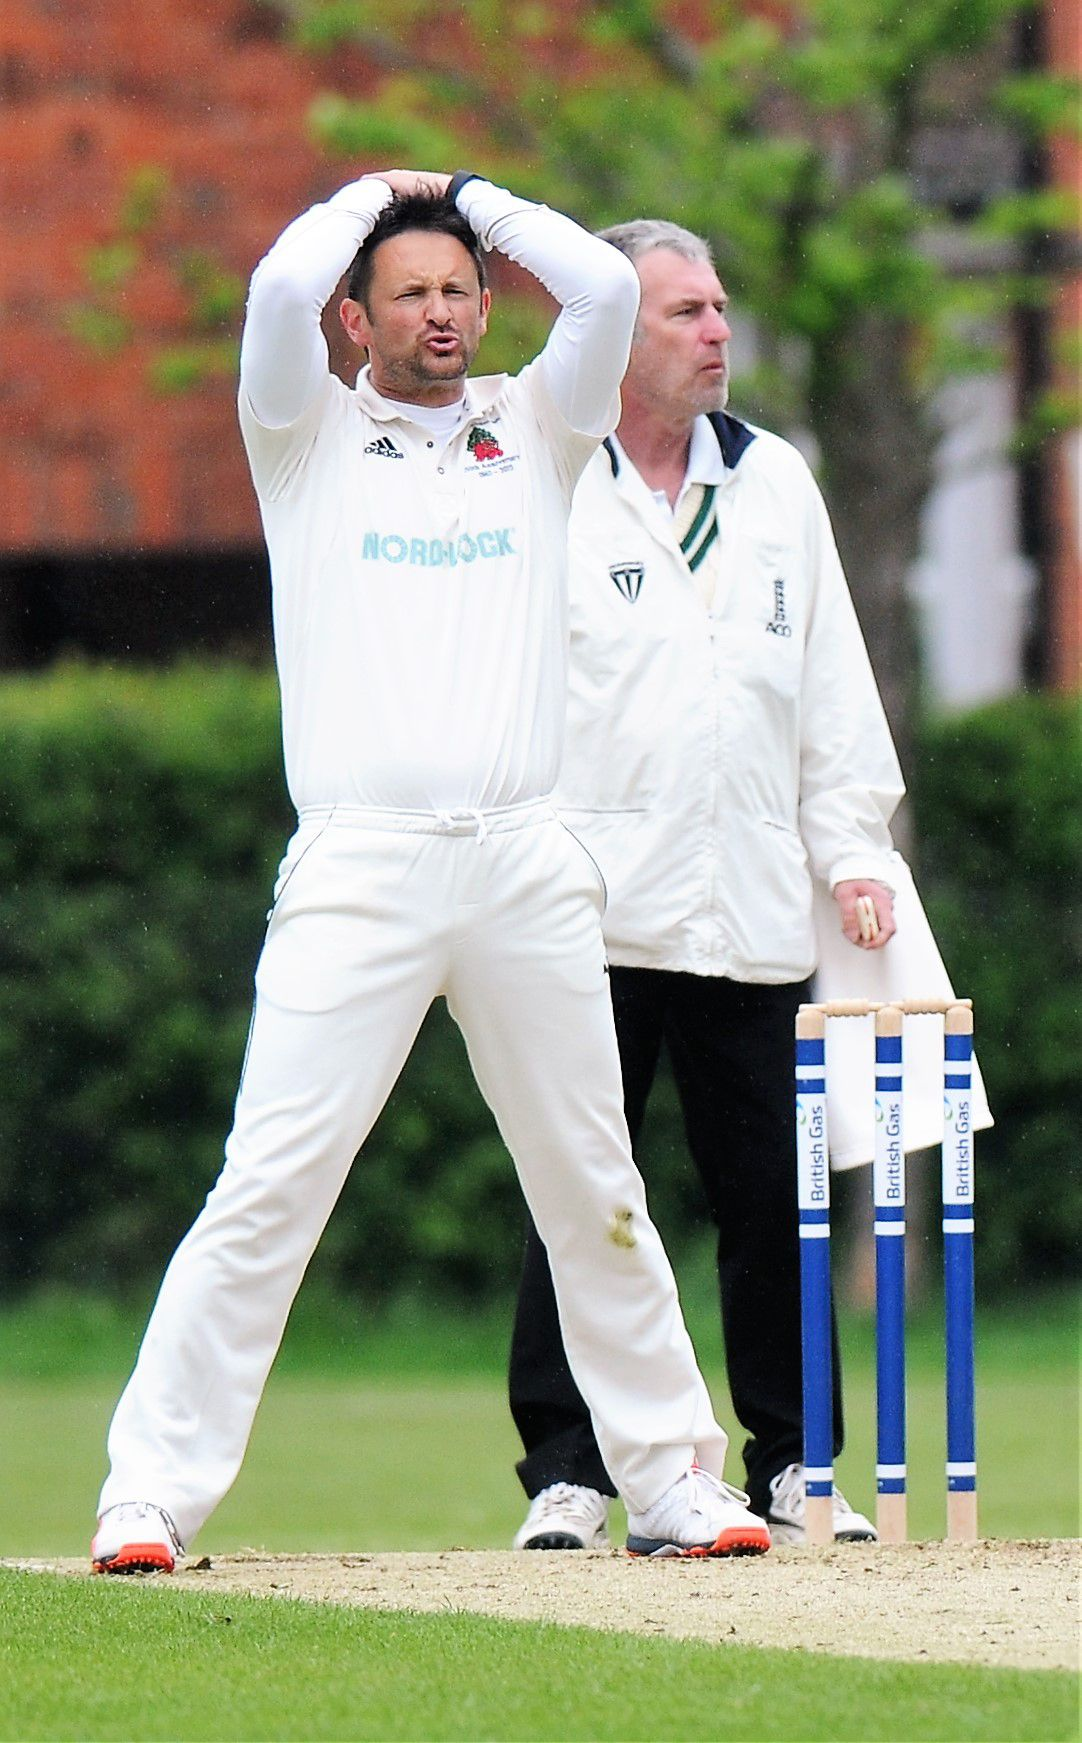 Glyn Treagus (pictured) hit 104 against Sarisbury - the club's first century of the summer season